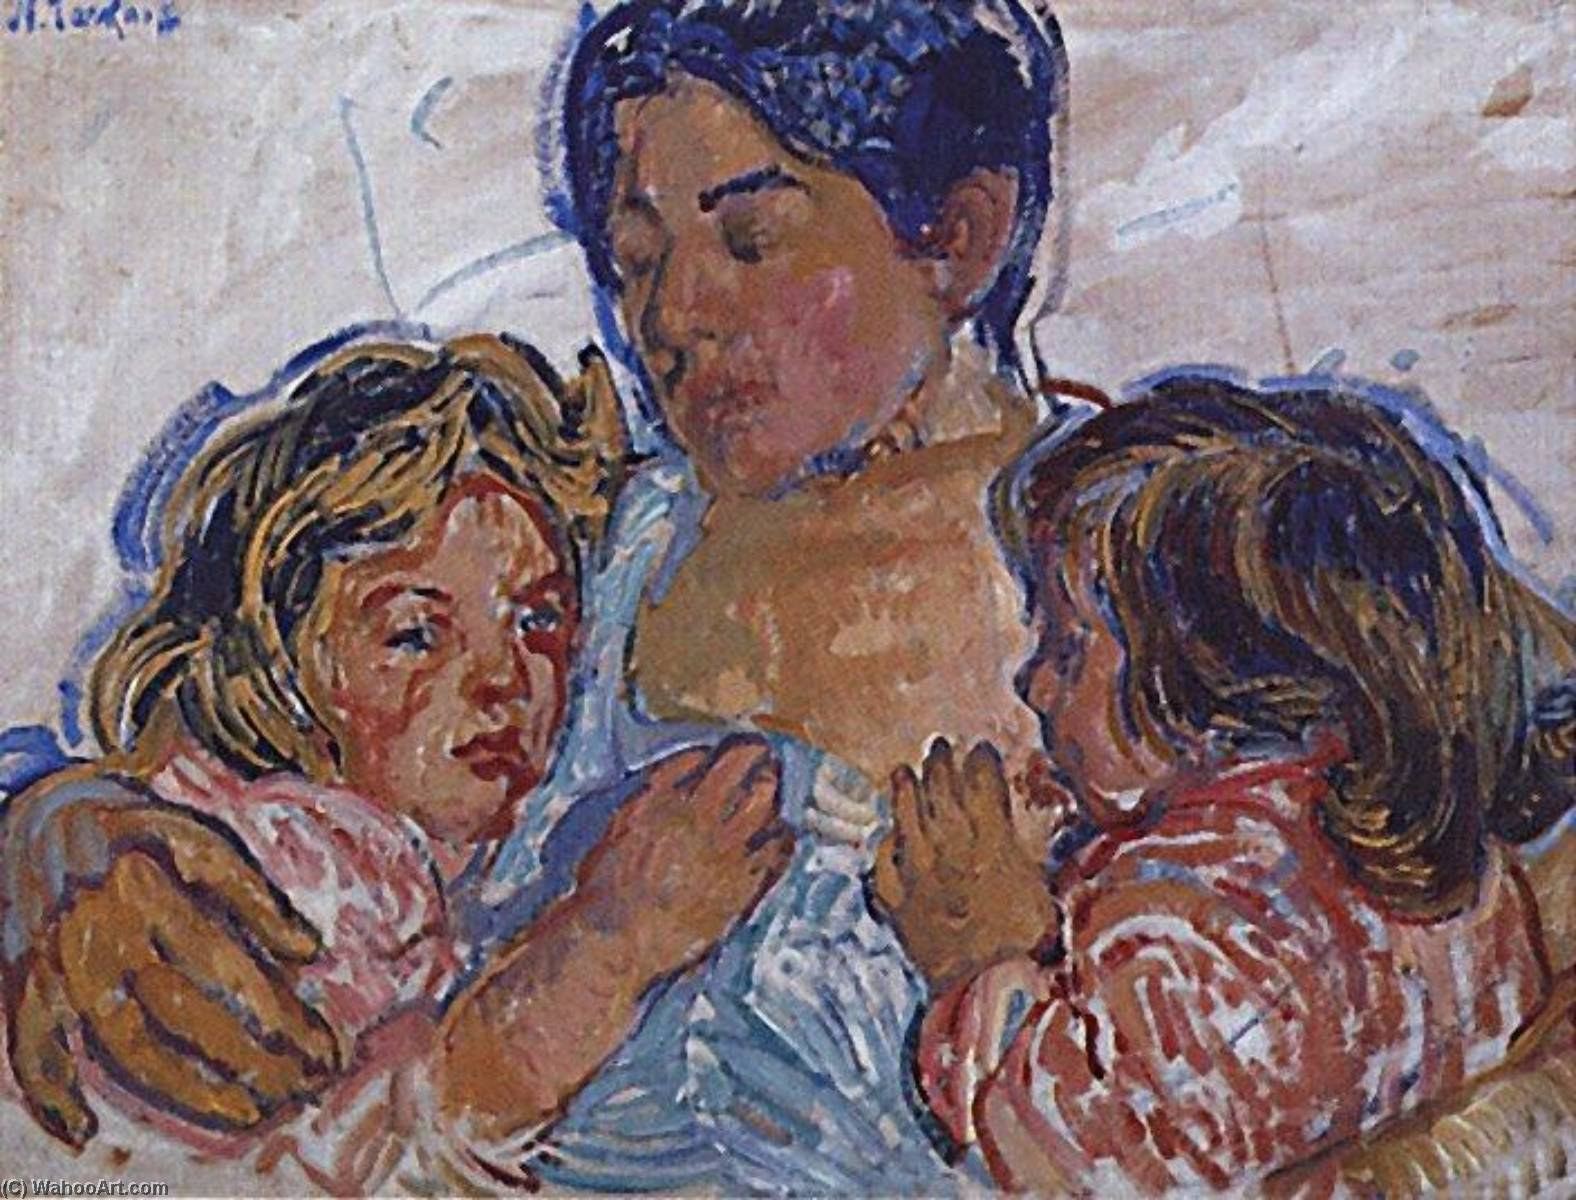 Mother's Tenderness, Oil On Panel by Nicolas Tarkhoff (1871-1930)